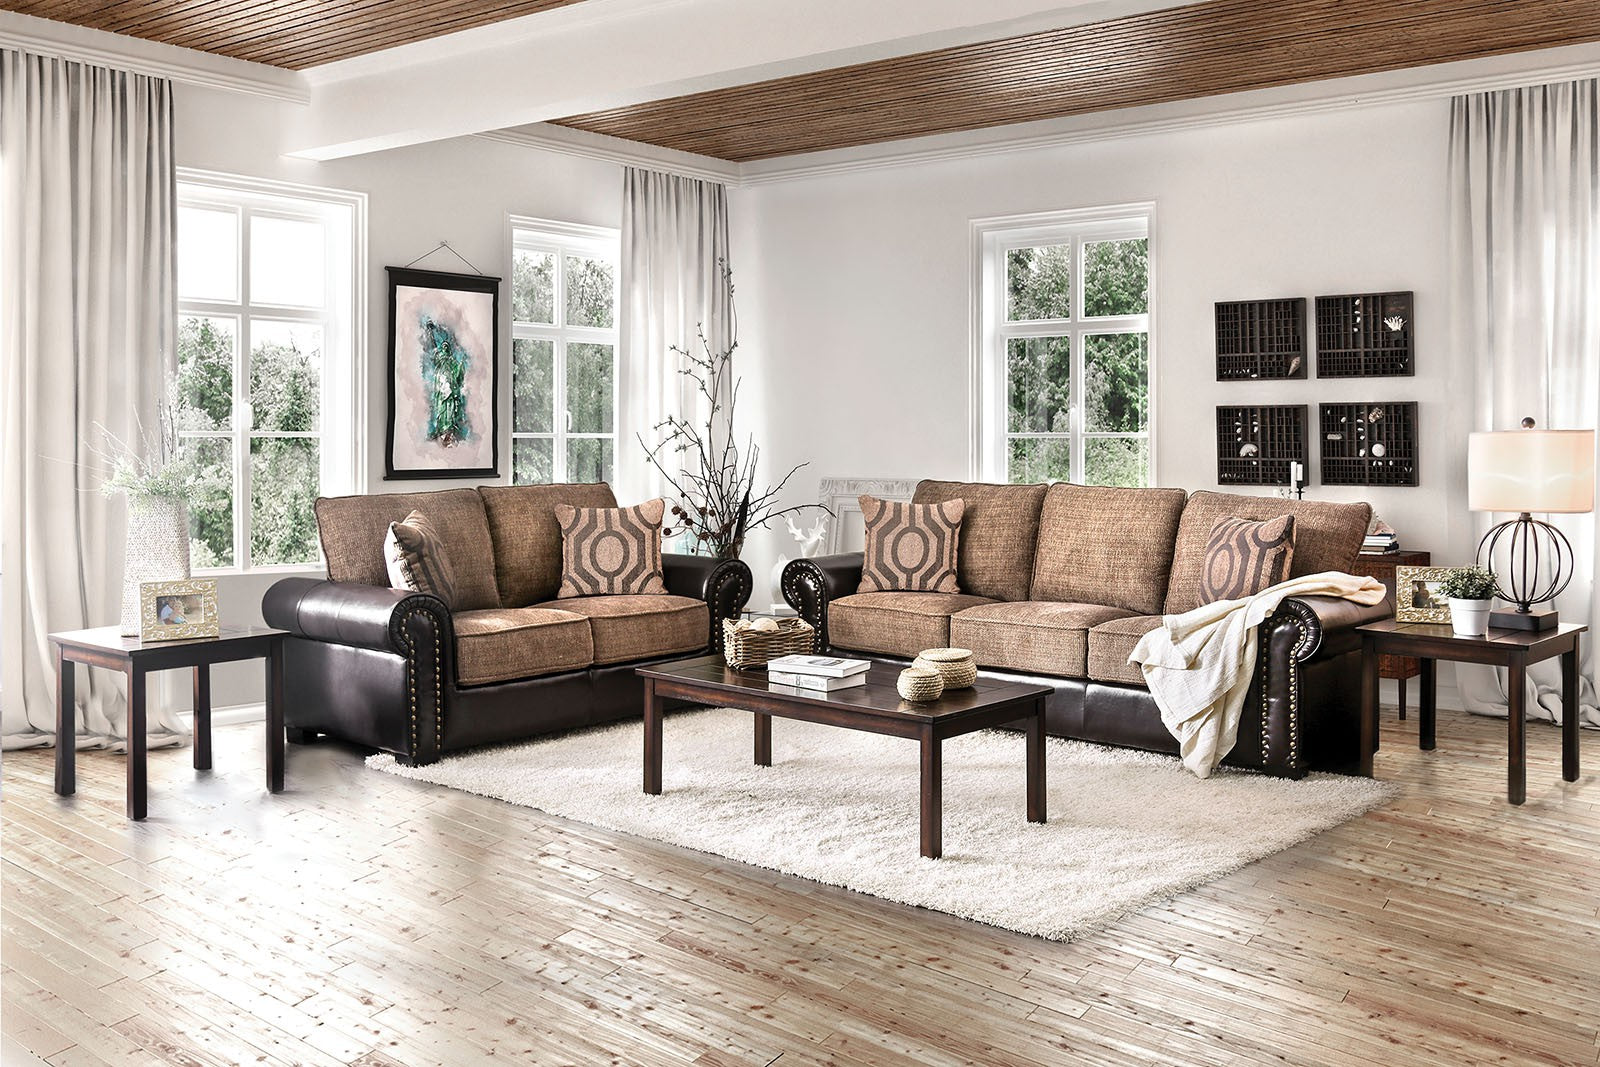 Ceuta Chenille/Leatherette Brown/Espresso Transitional Sofa